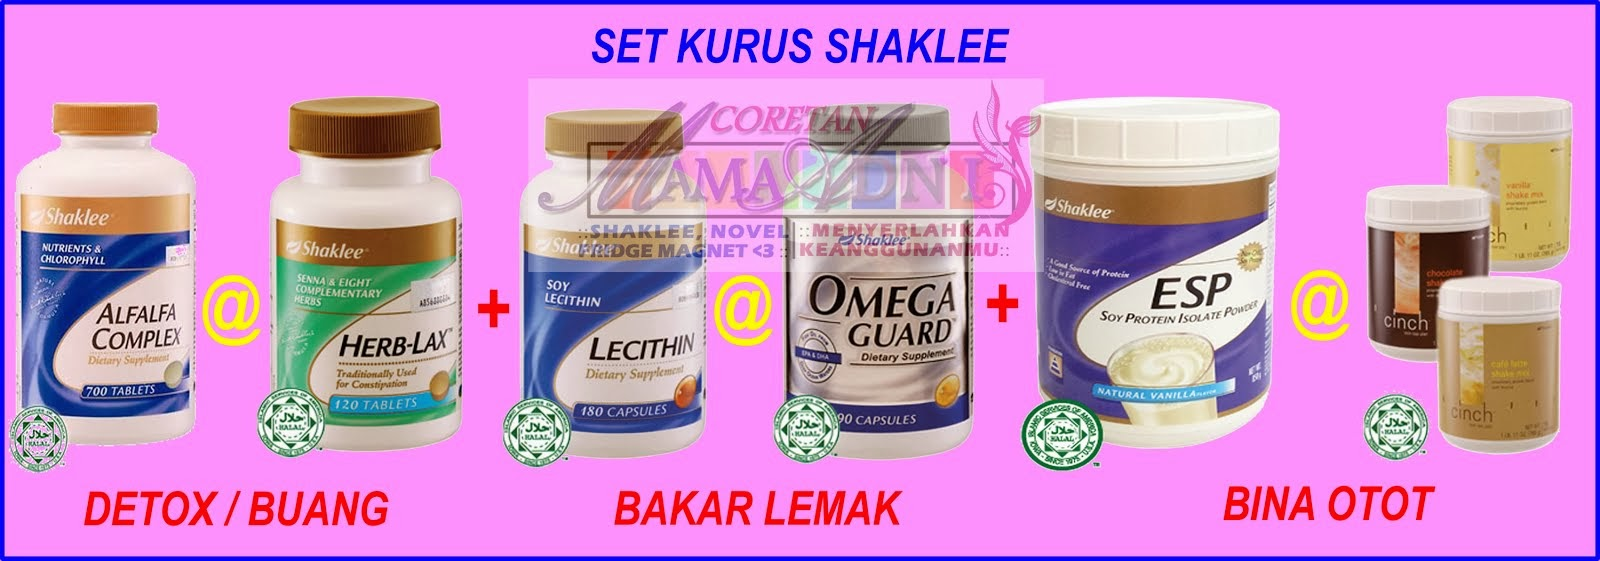 Set Kurus Shaklee Yang Superb